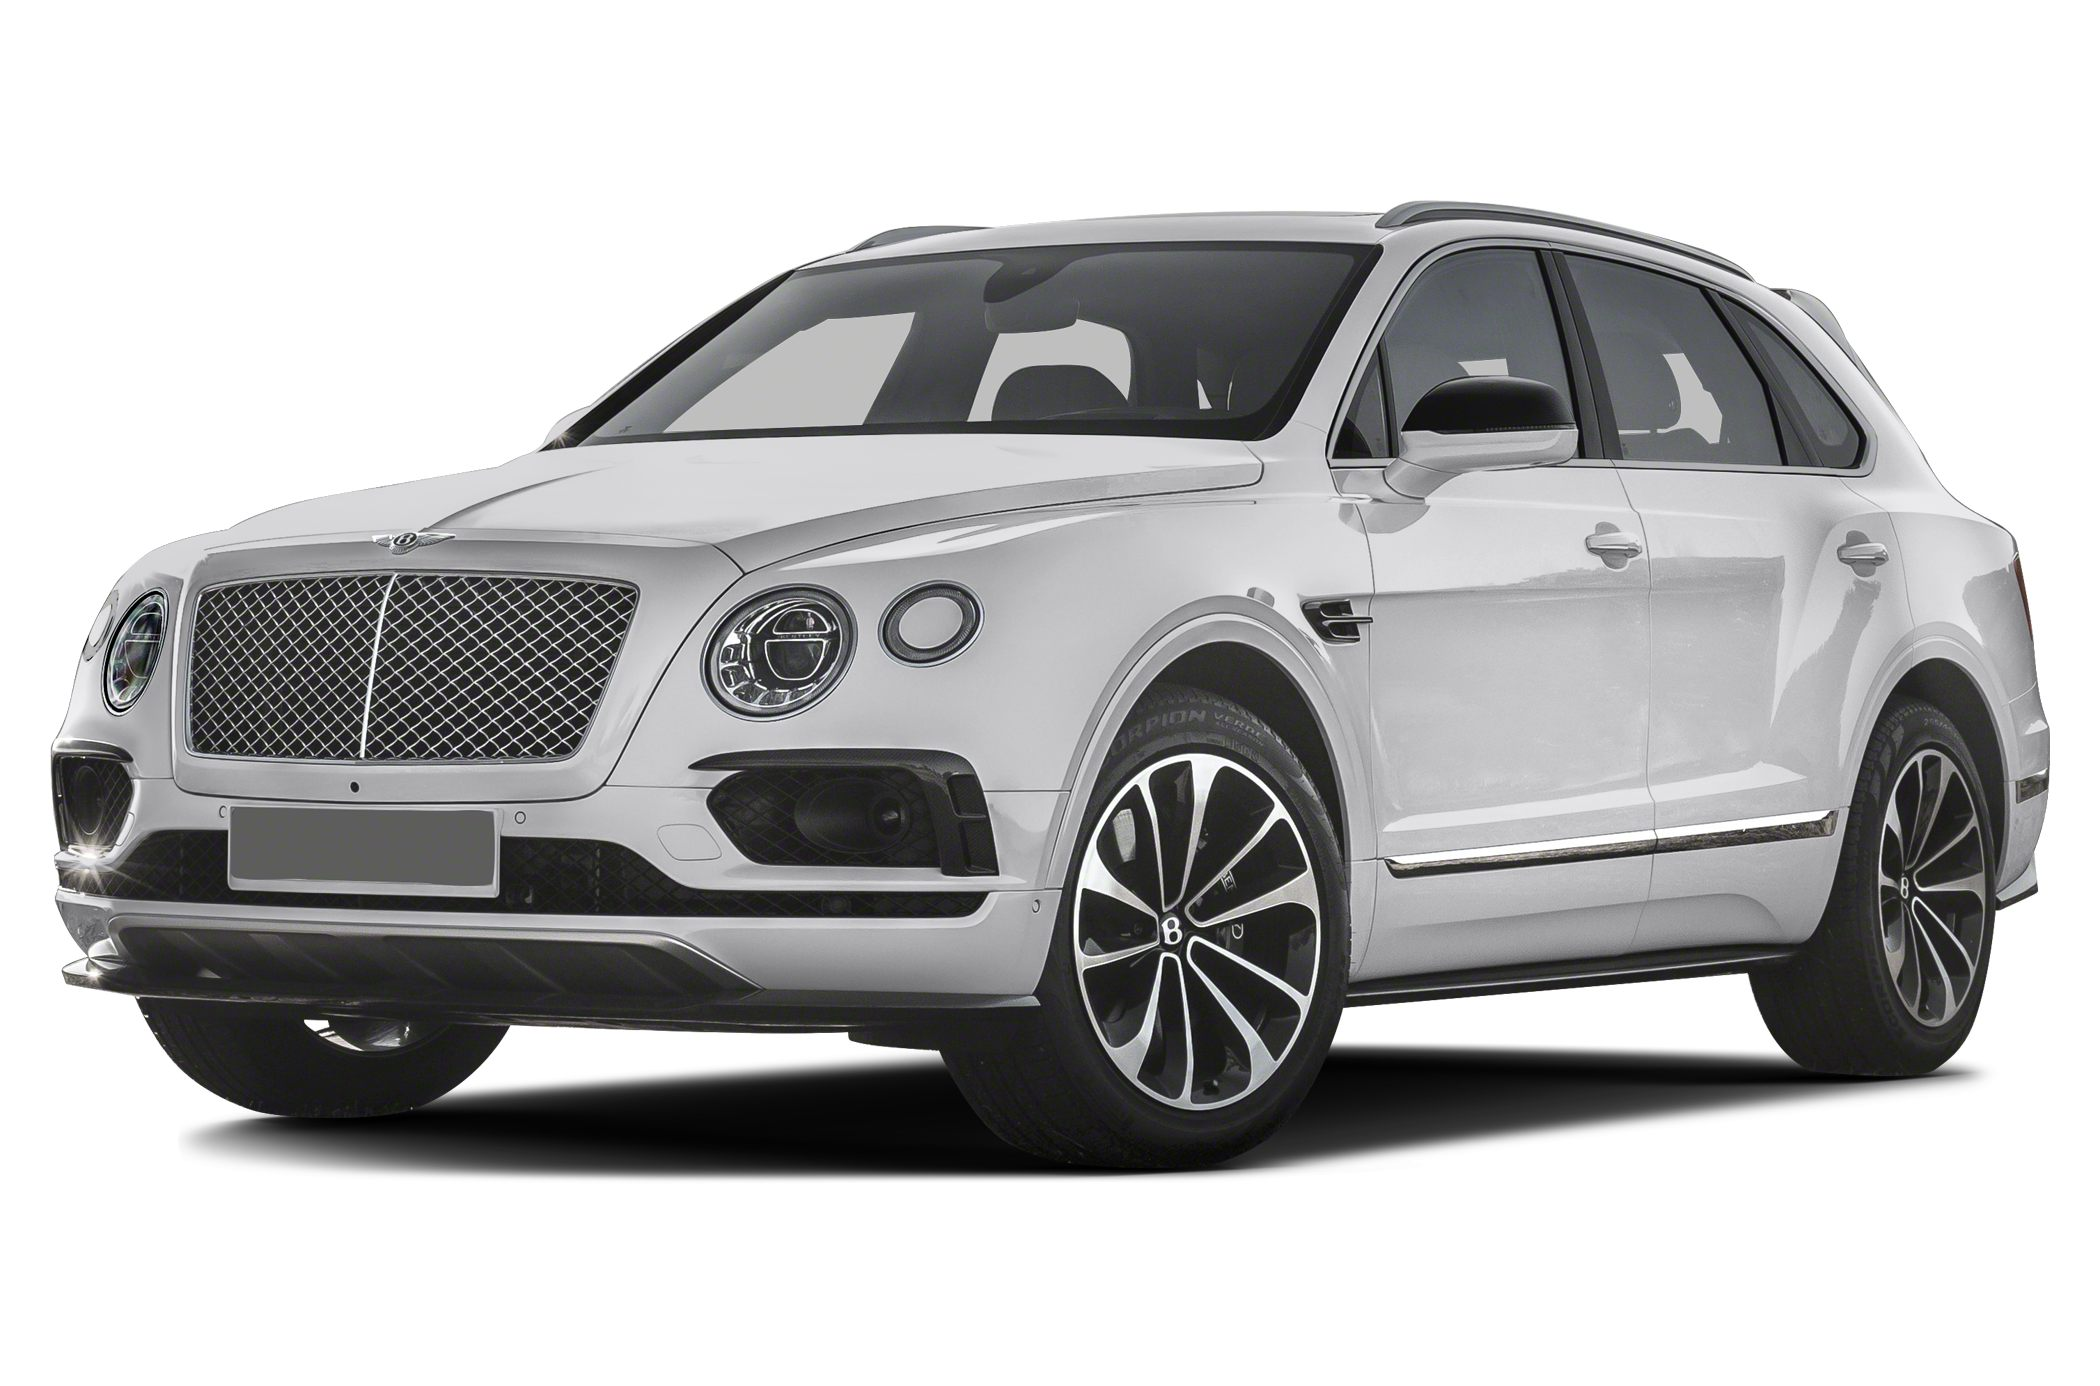 2019 Bentley Bentayga Specs Safety Rating Mpg Carsdirect